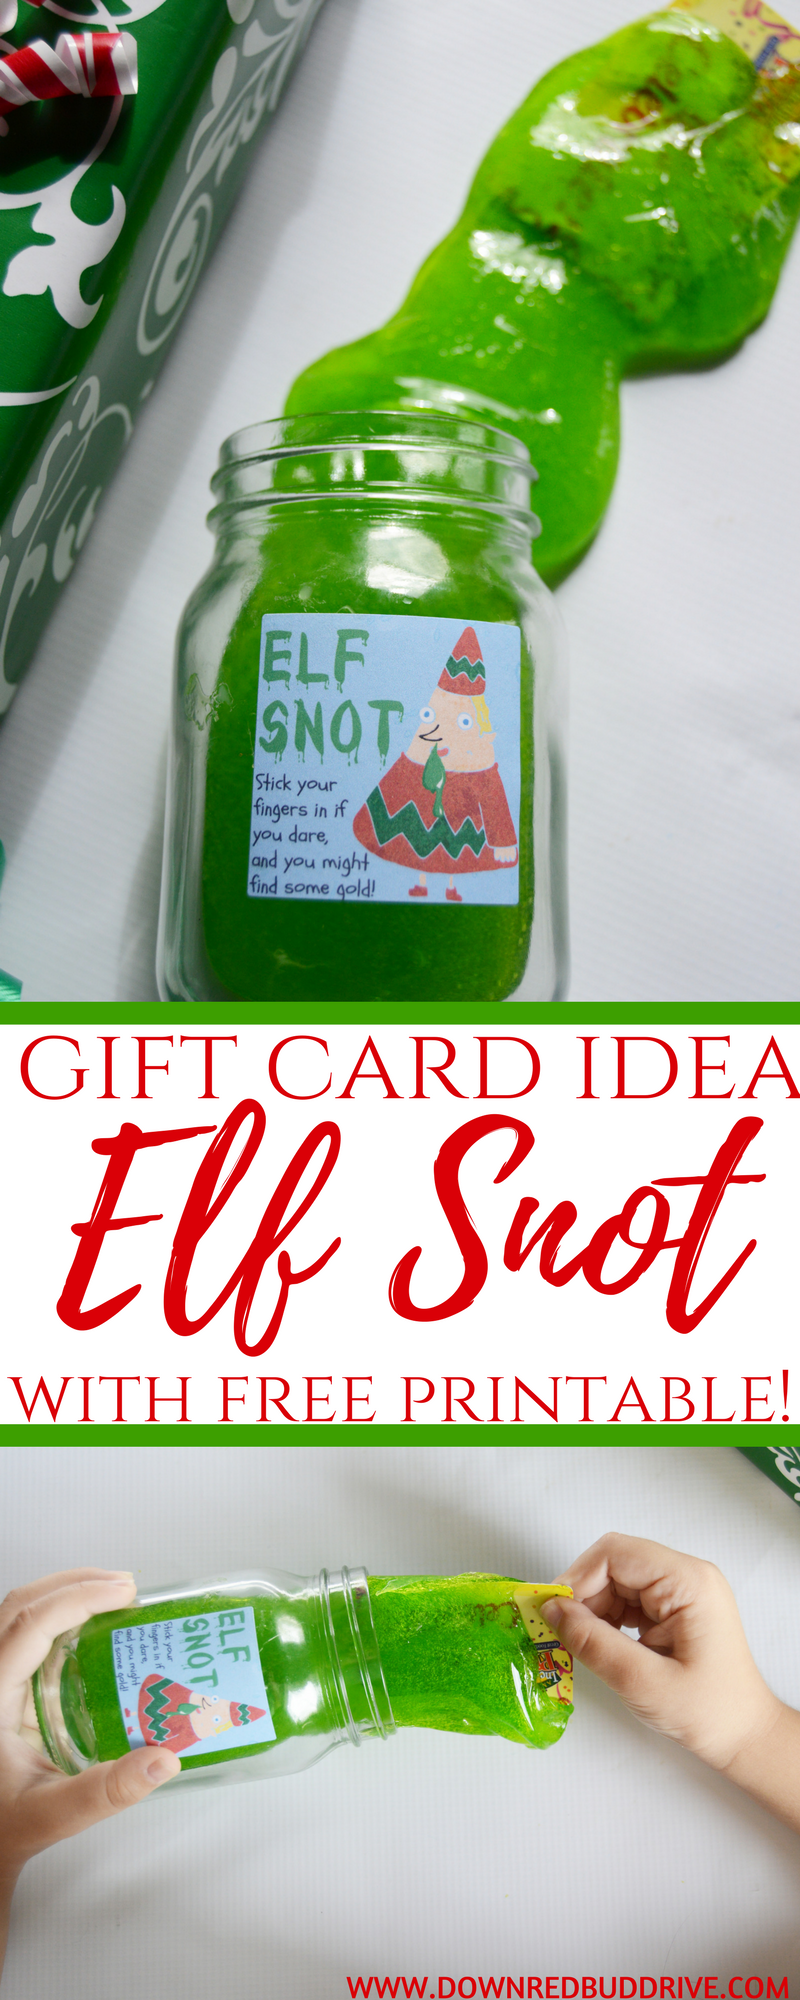 Elf Snot | Gift Card Gifts | Christmas DIY